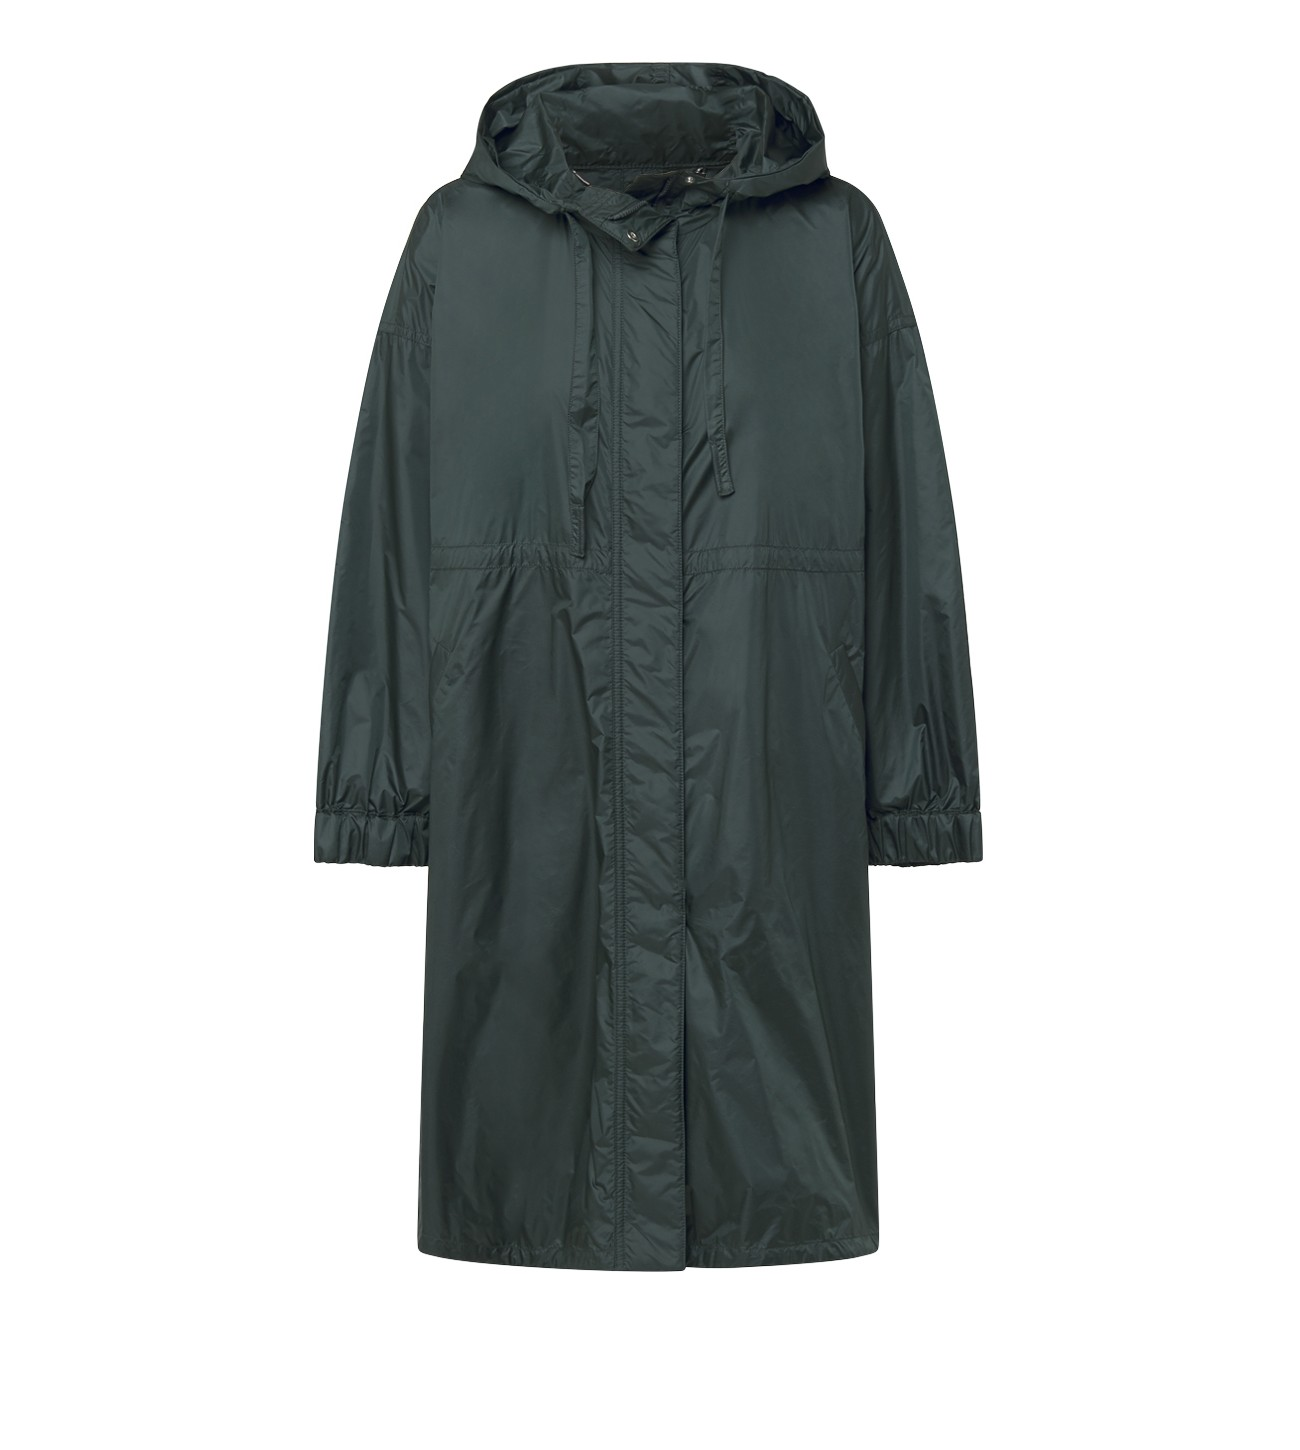 MARELLA_OVERSIZED_WATERPROOF_PARKA_WITH_HOOD_AND_GATHERING_AT_WAIST_MARIONA_FASHION_CLOTHING_WOMAN_SHOP_ONLINE_VENTO